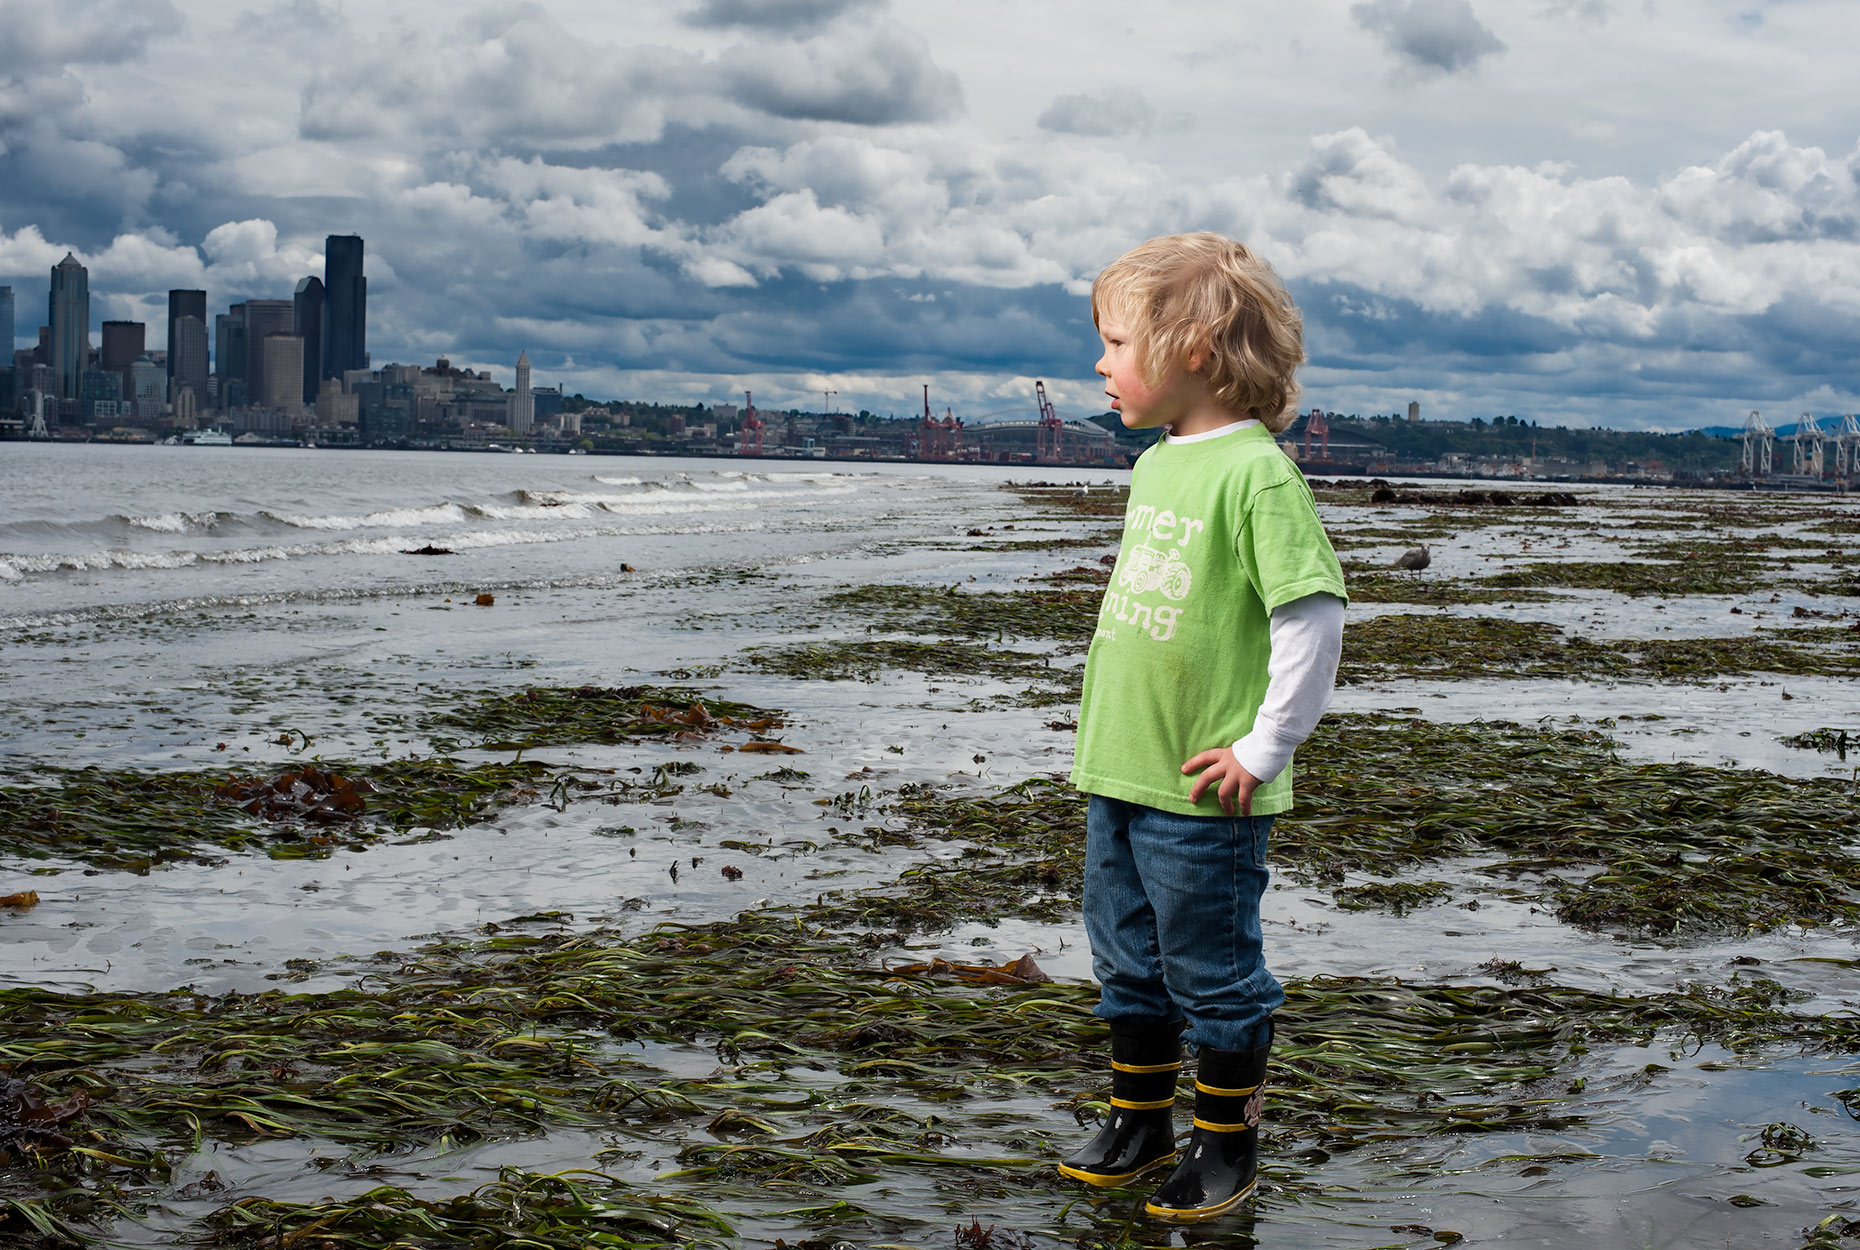 Editorial portrait of a young boy in Seattle. Jim Meyers / Vertizonphoto